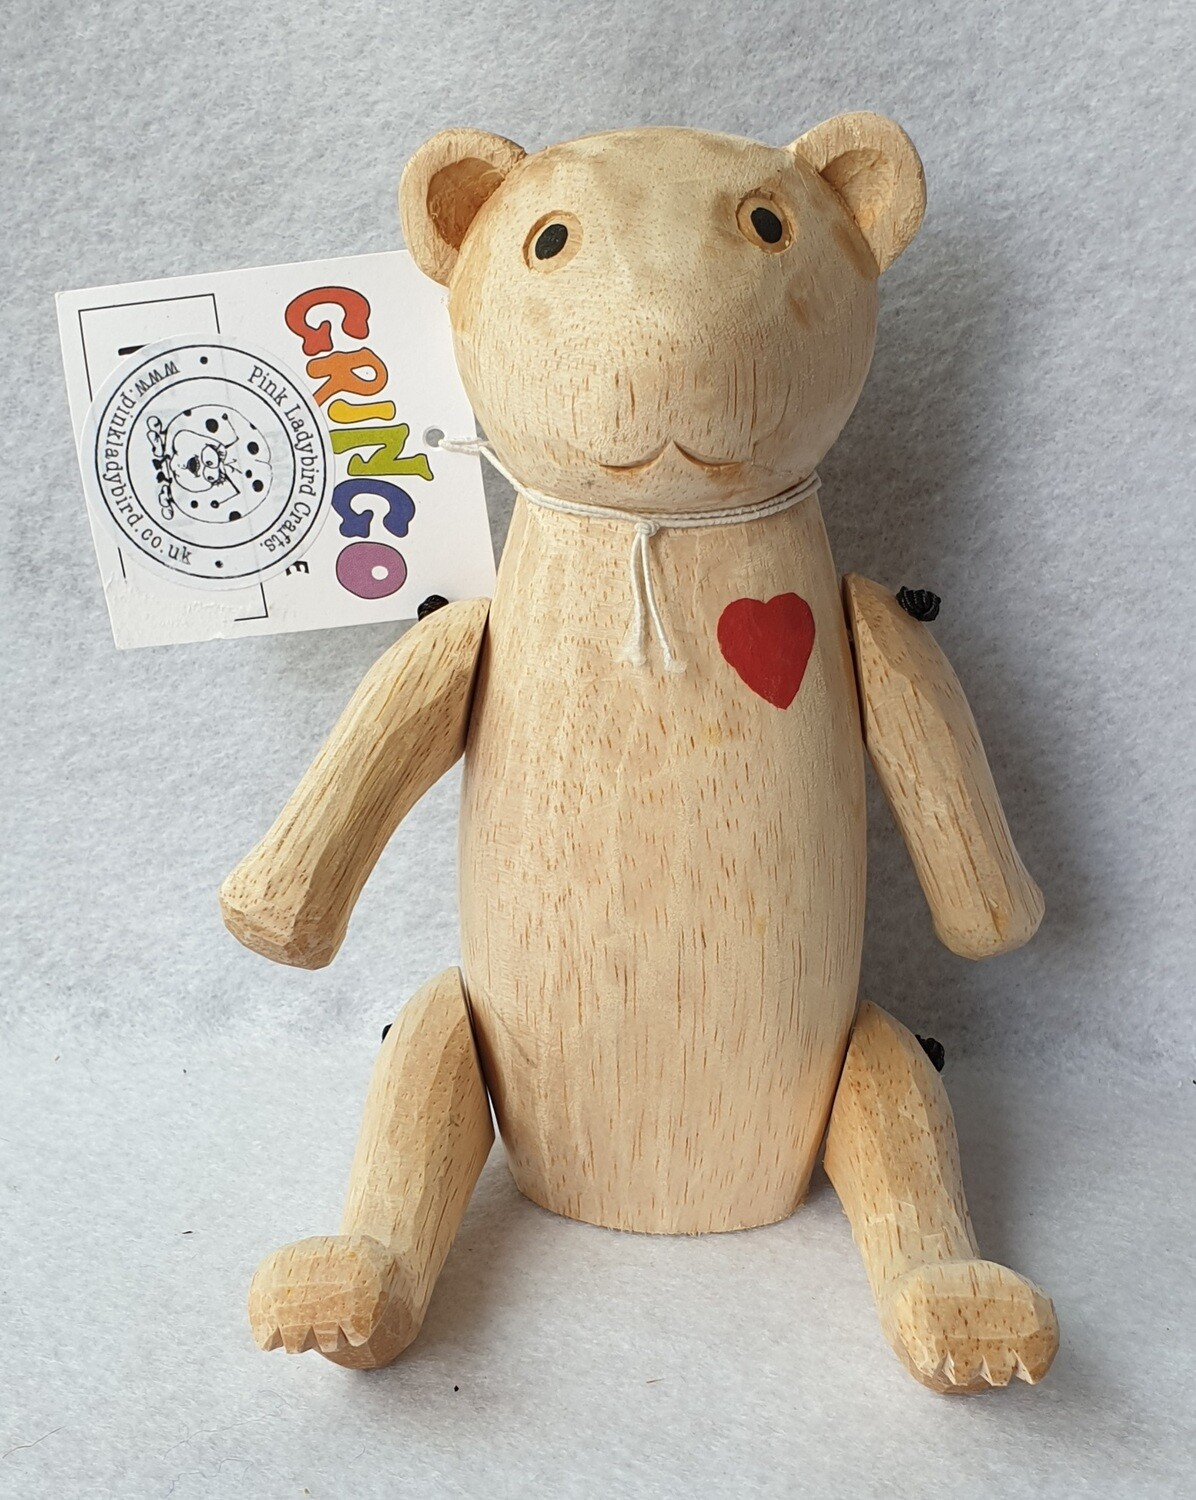 Gringo hand carved, jointed, wooden bear.